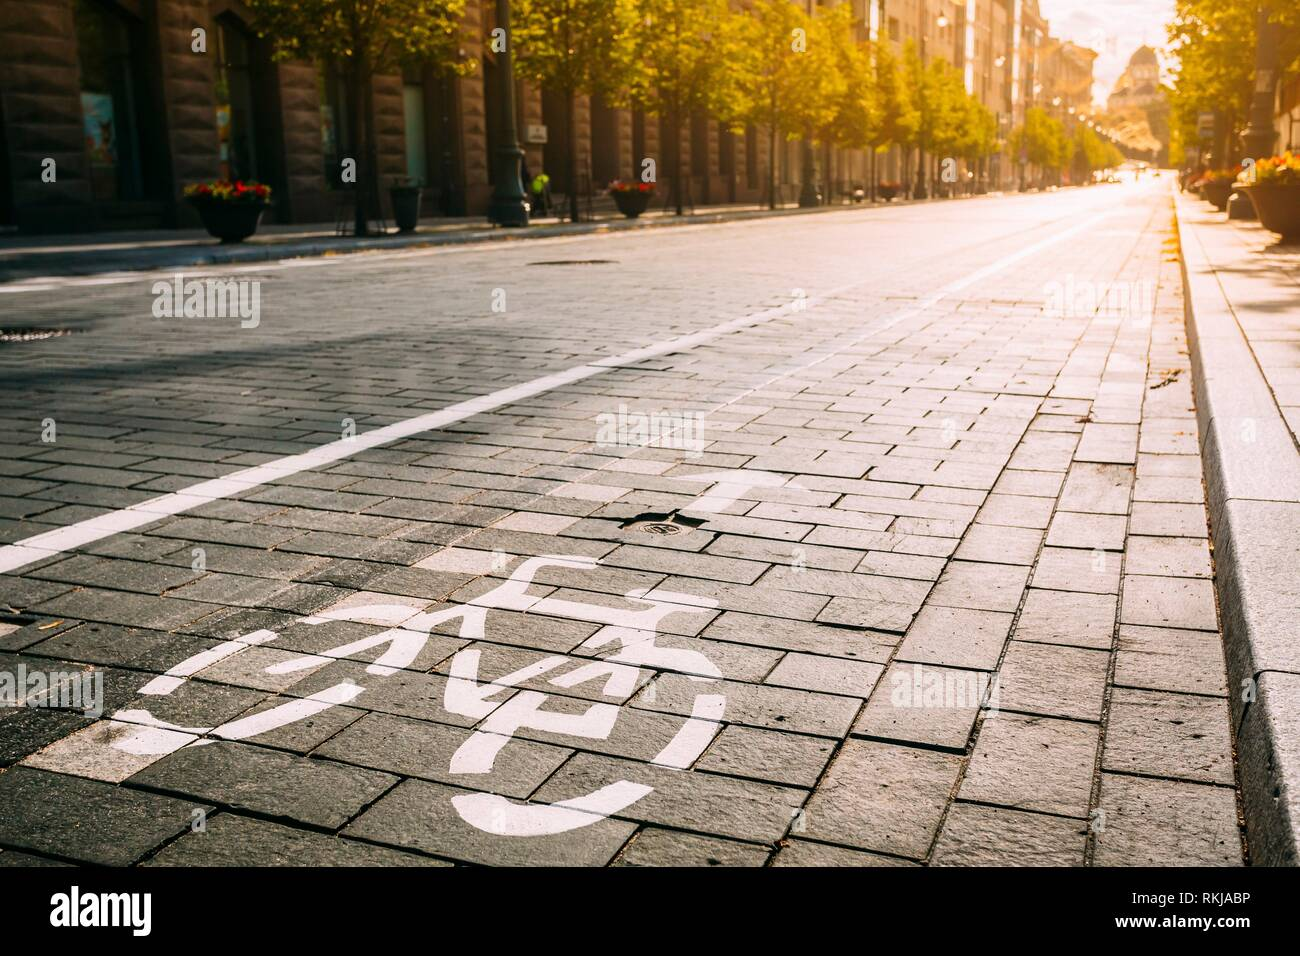 Bycycle Road Sign, Road Marking Of Bicycle Path Along Avenue Or Street In City In A Sunny Morning Or Evening At Sunset Or Sunrise. Concept Of Cycling Stock Photo